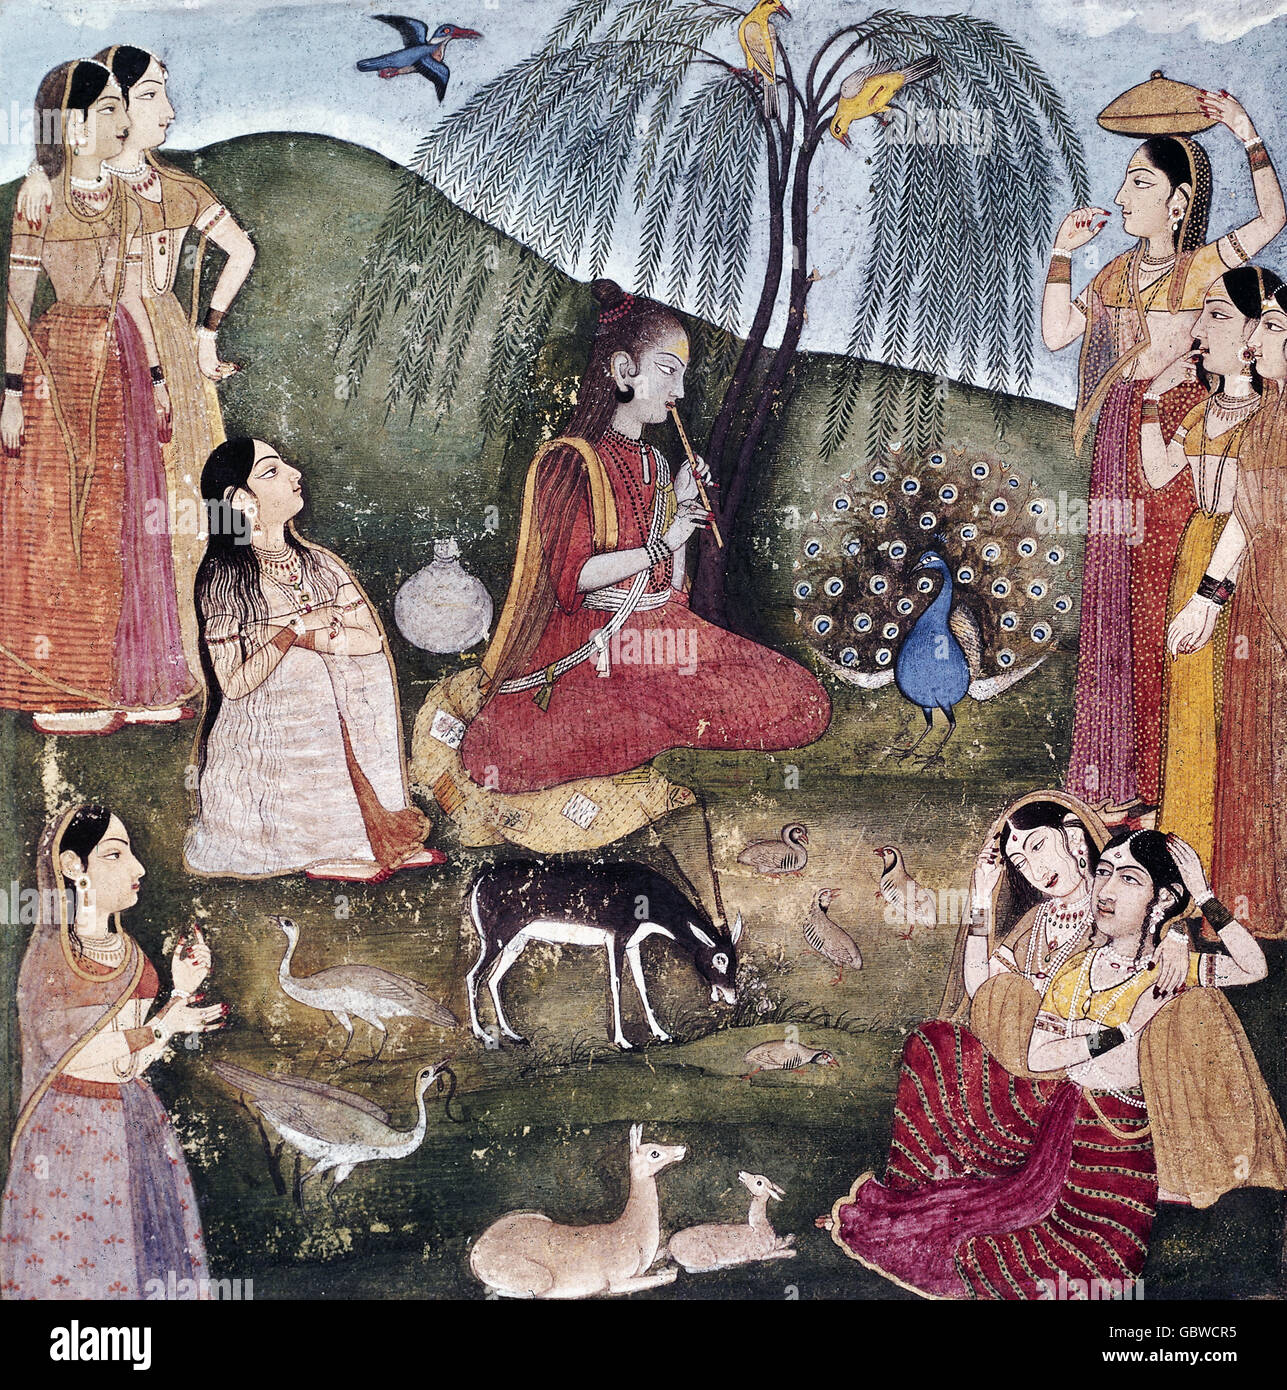 fine arts, India, miniature, miniatures, 'The wounderful Playing of the Flute', circa 1700, National Museum, - Stock Image